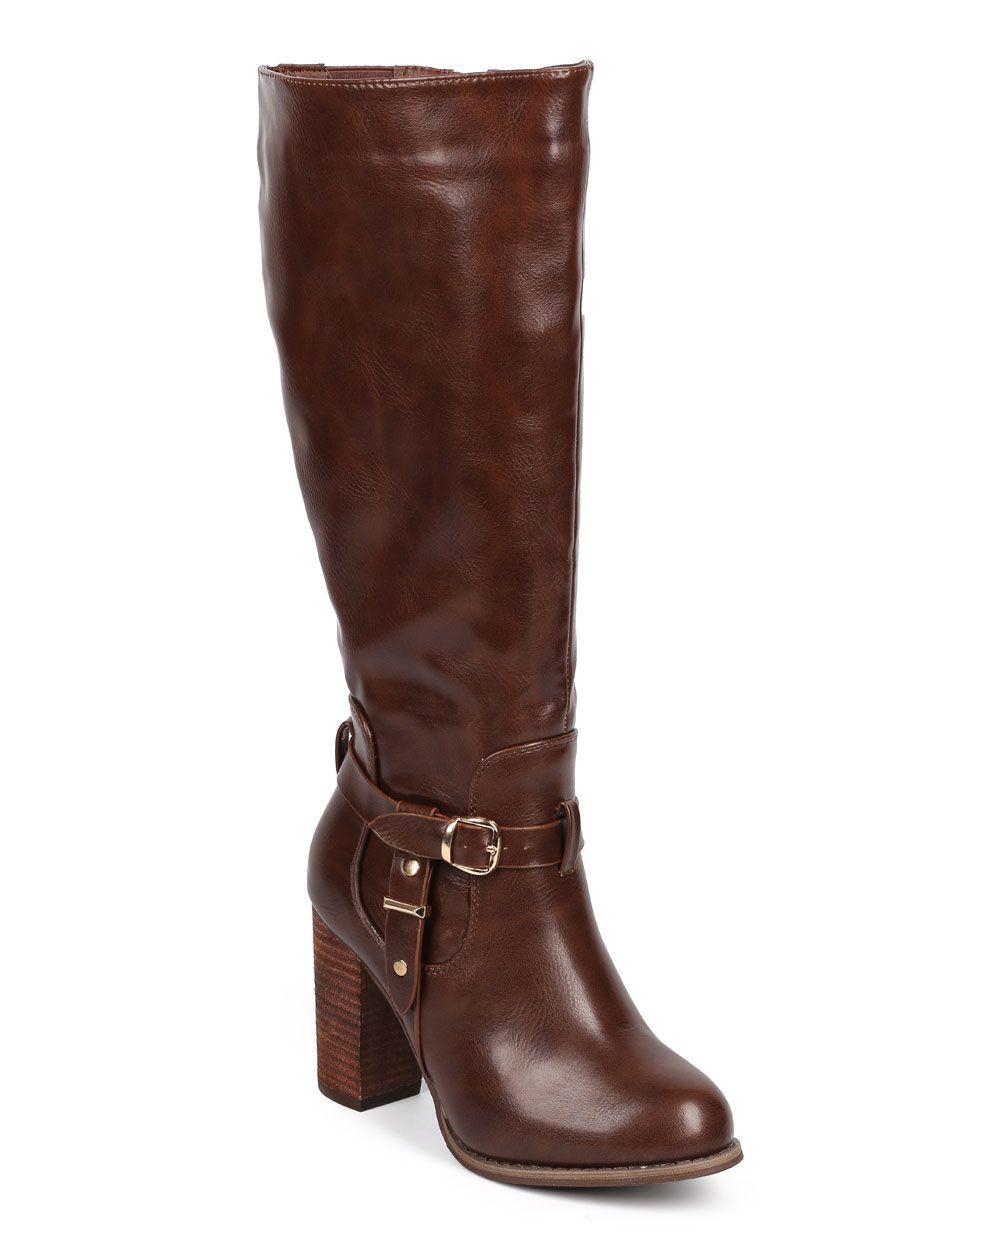 98b2c5b1fb92 New-Women-DbDk-Greer-1-Knee-High-Leatherette-Belted-Chunky-Heel-Riding-Boot -Size